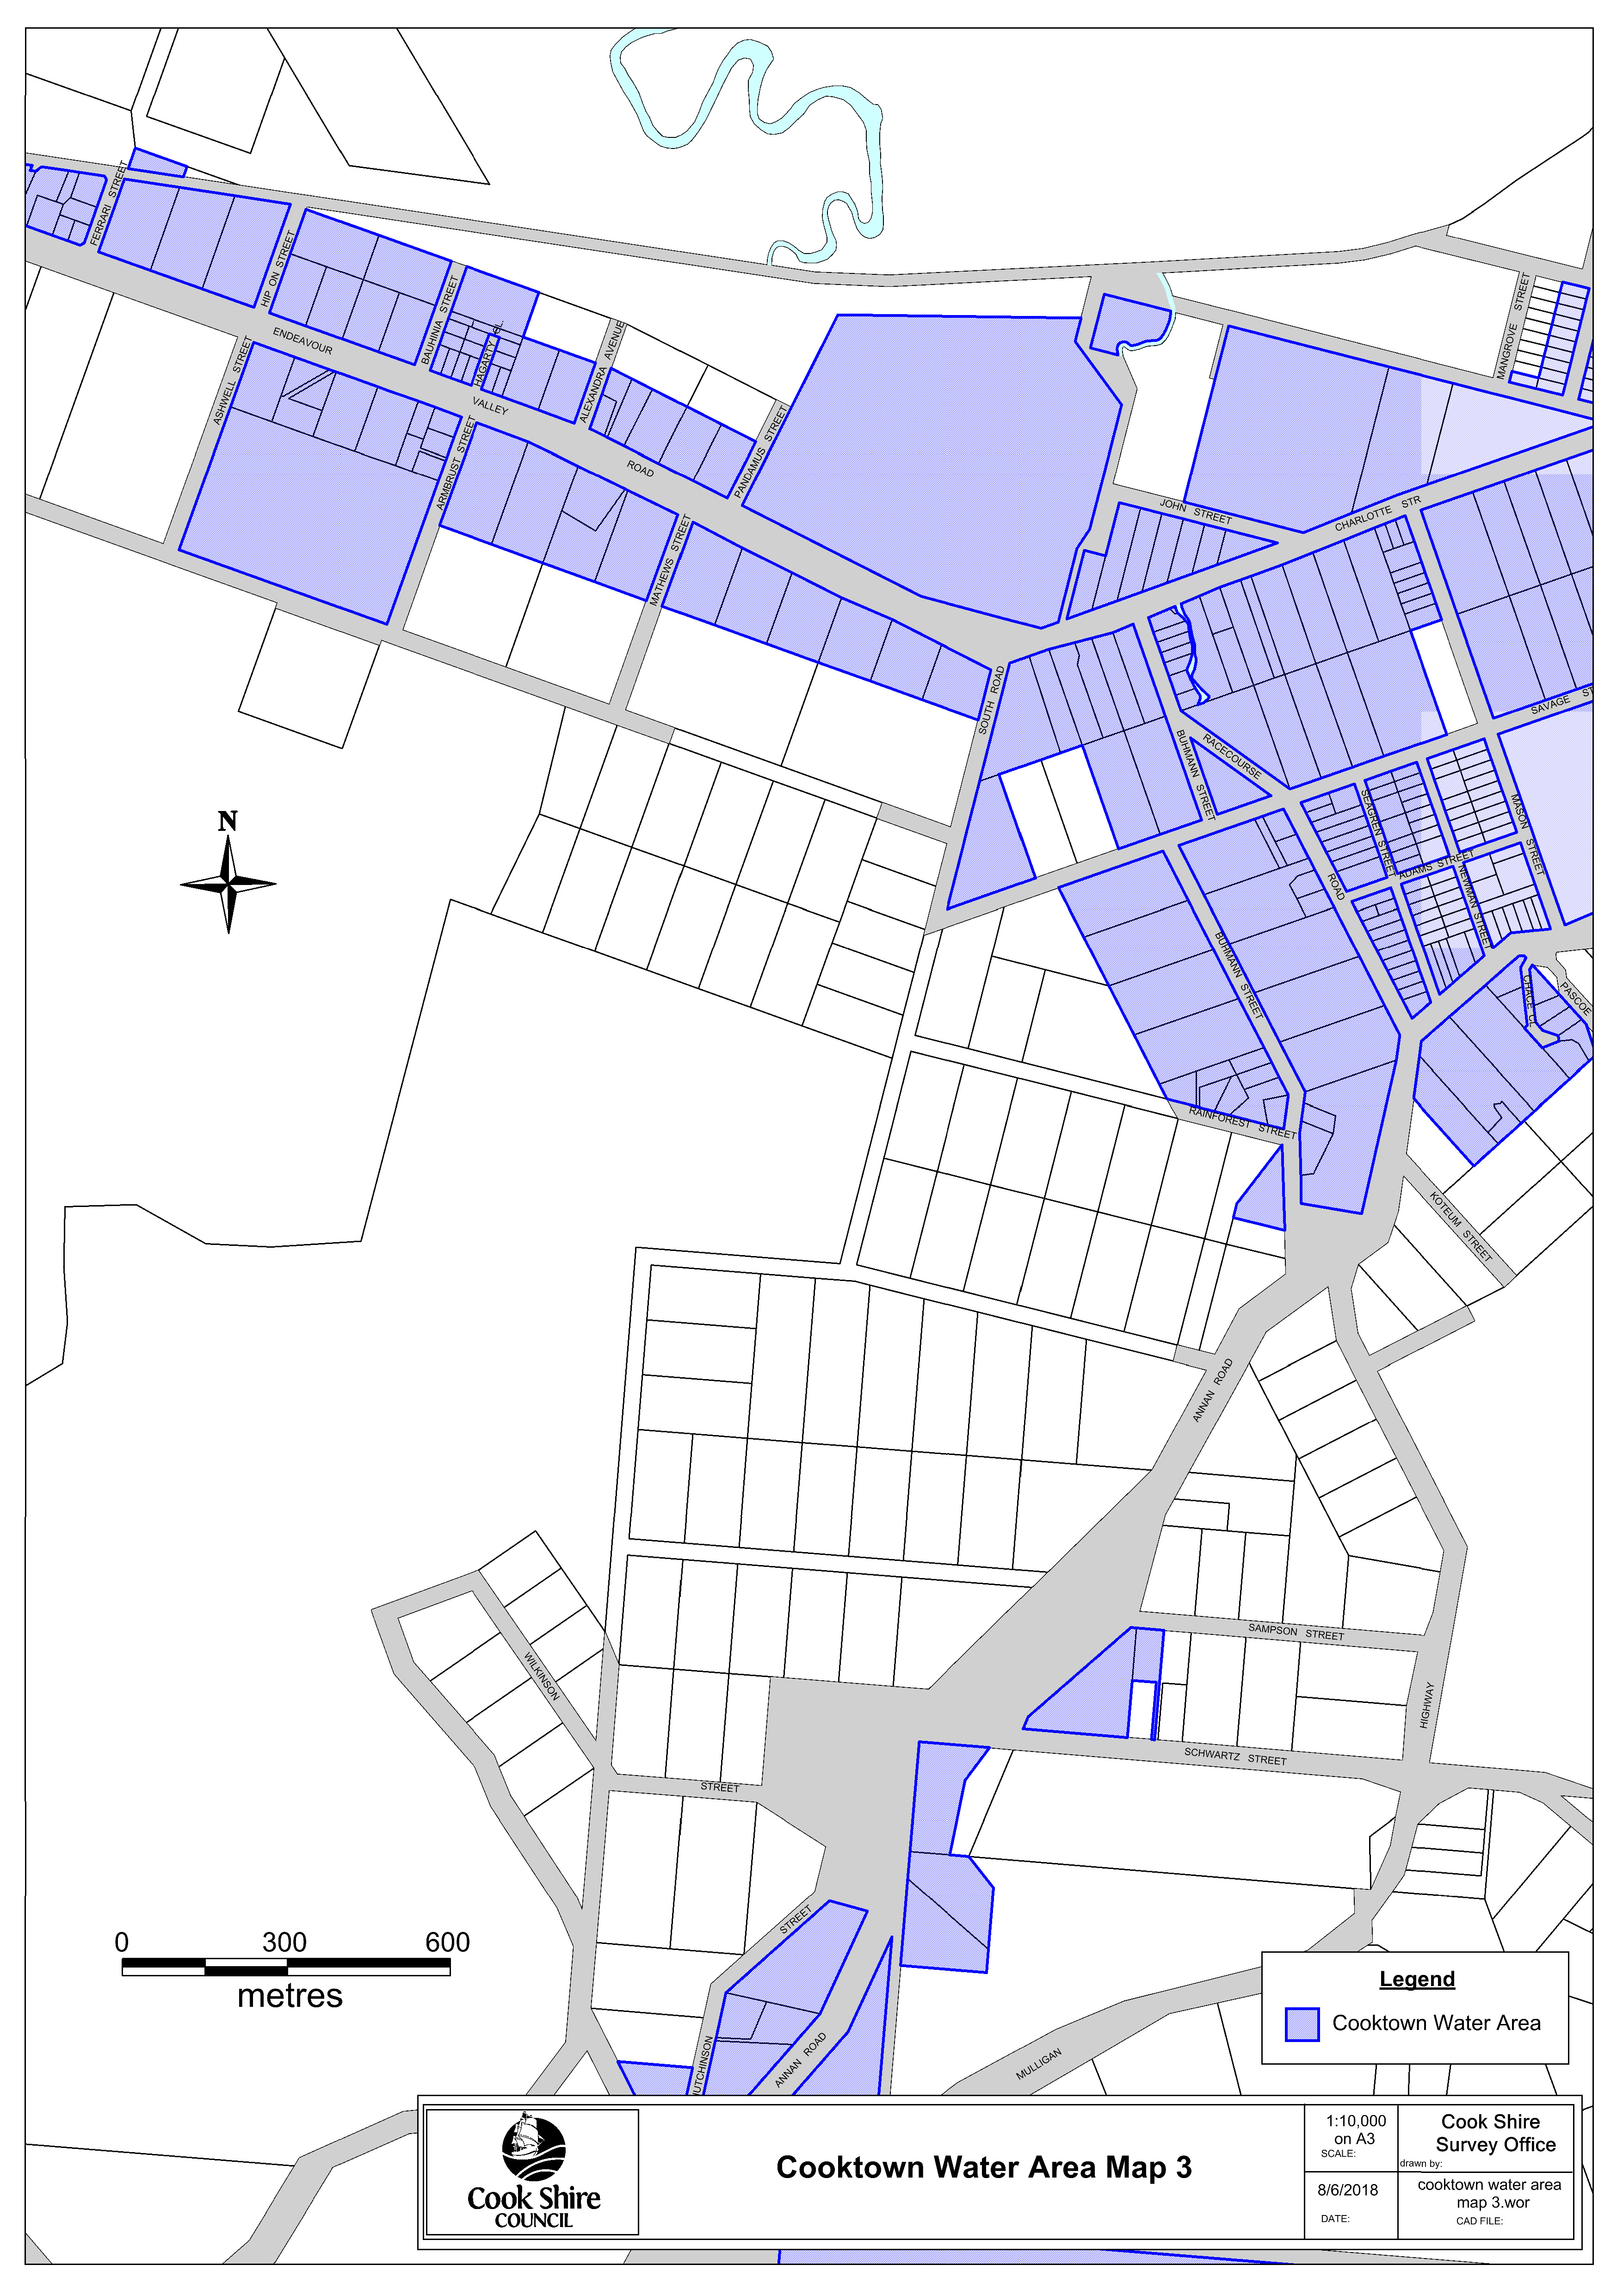 Cooktown water area map 3